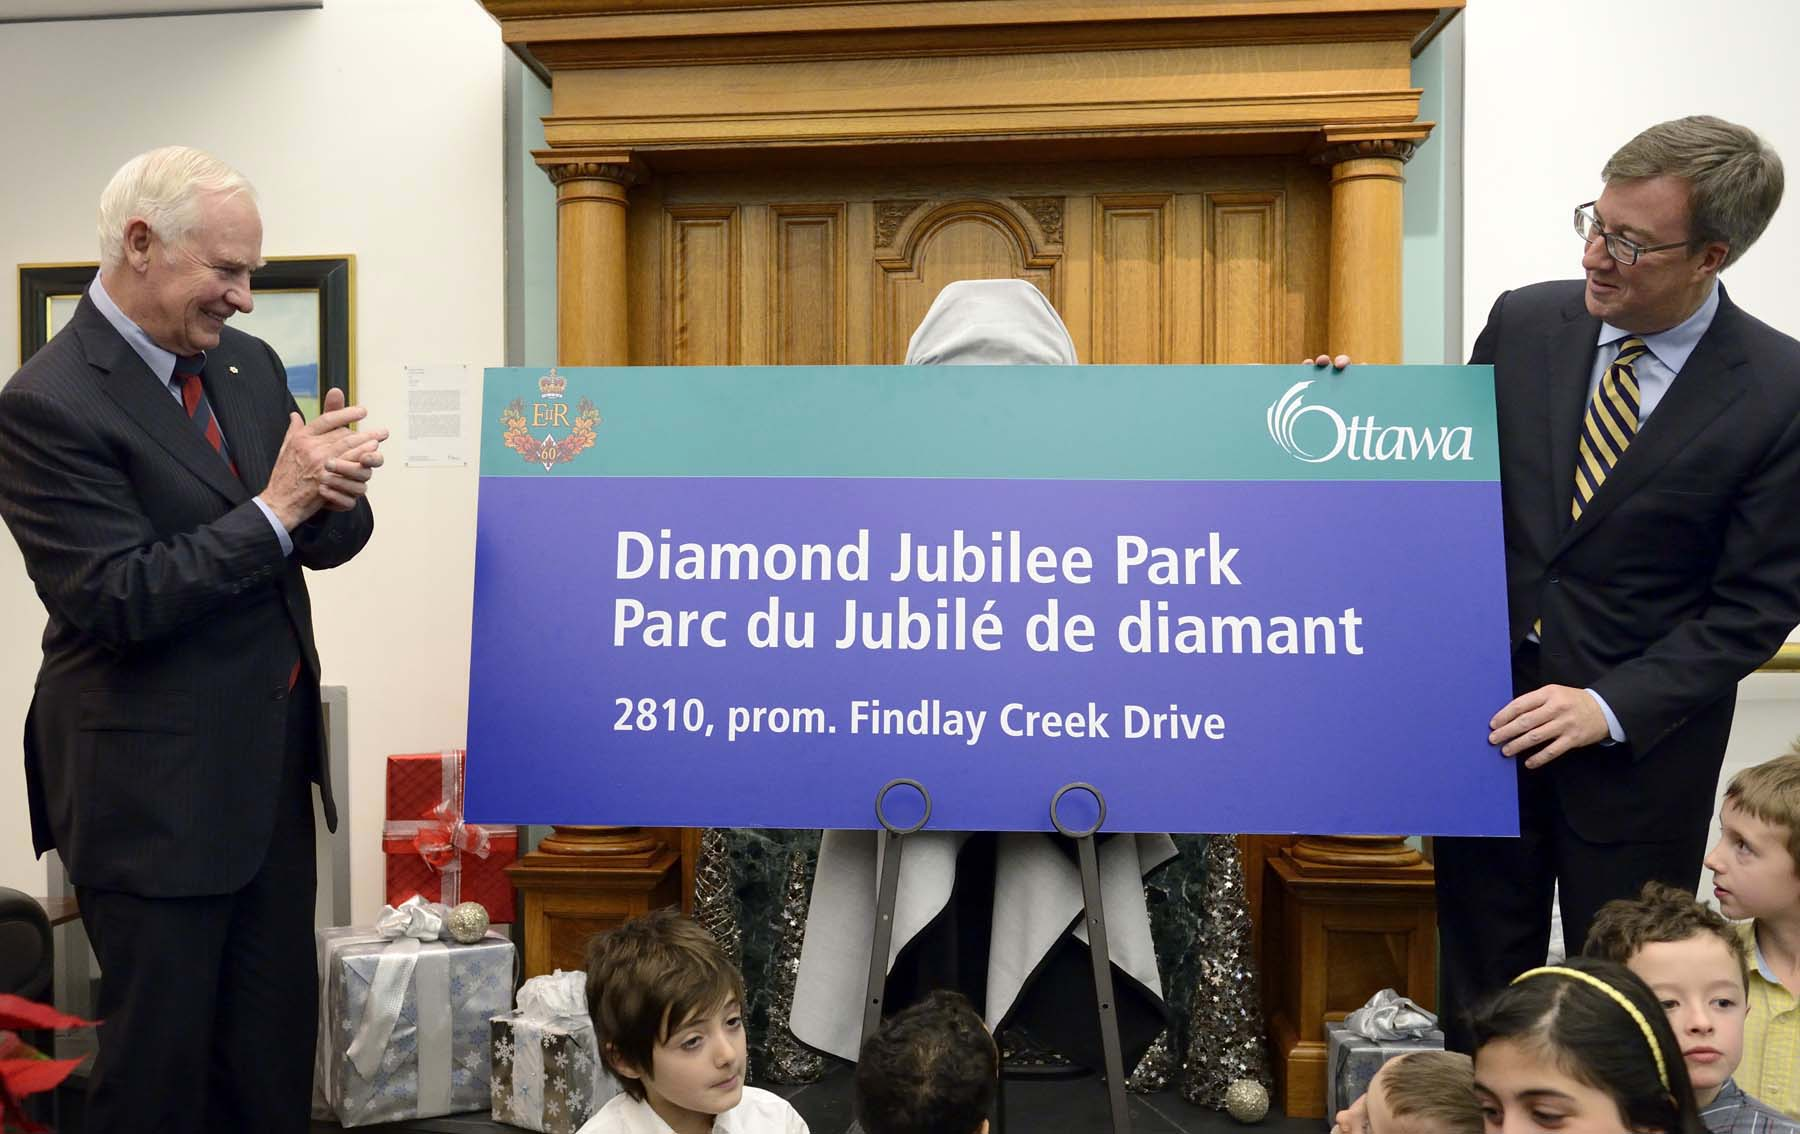 Upon the invitation of His Worship Jim Watson, Mayor of the City of Ottawa, His Excellency the Right Honourable David Johnston, Governor General of Canada, took part in the official dedication of Diamond Jubilee Park.